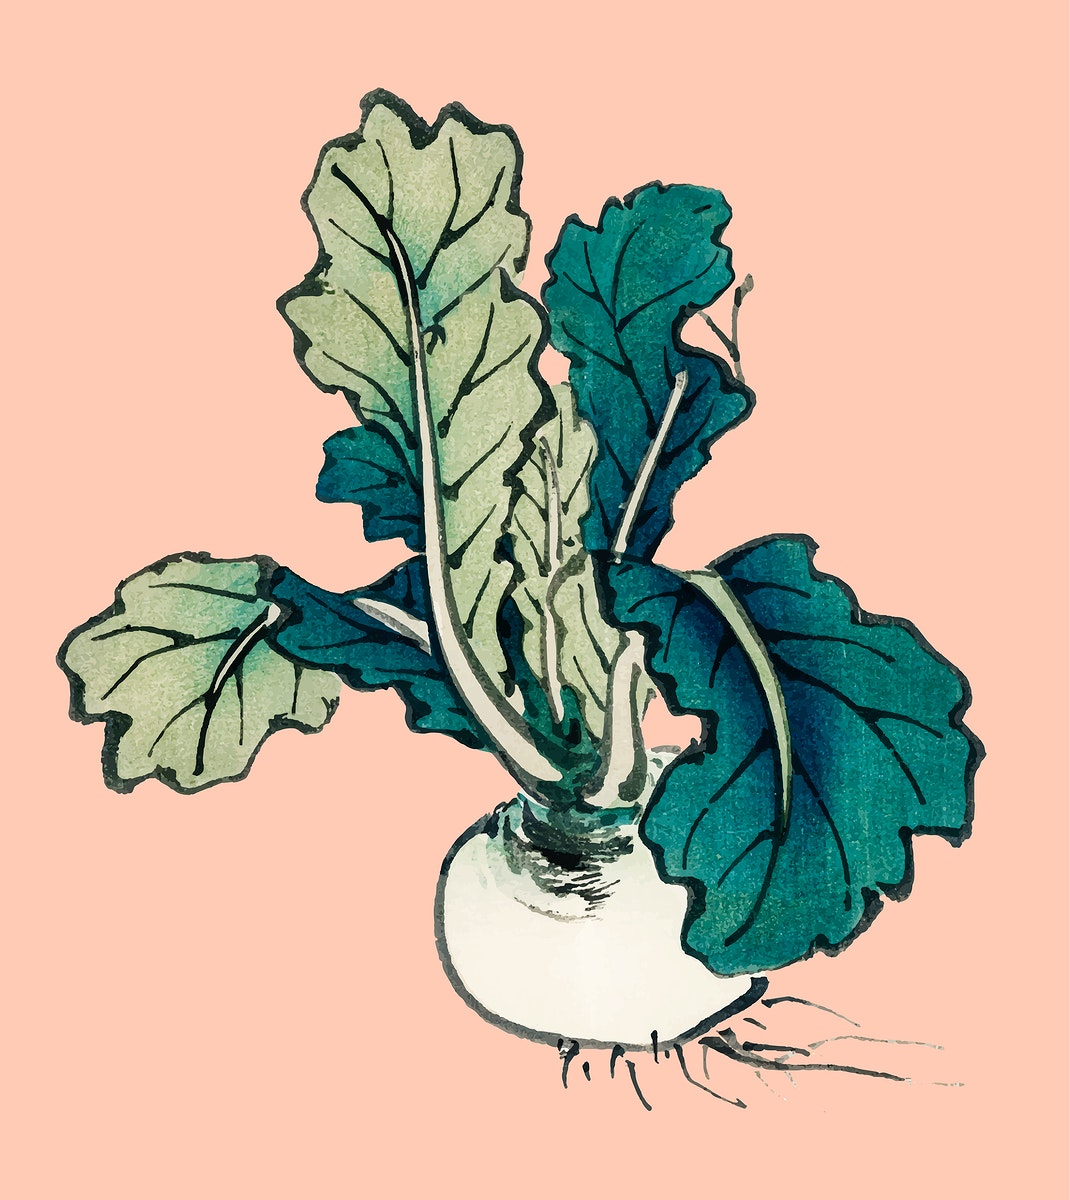 Radish by Kōno Bairei (1844-1895). Digitally enhanced from our own original 1913 edition of Bairei Gakan.